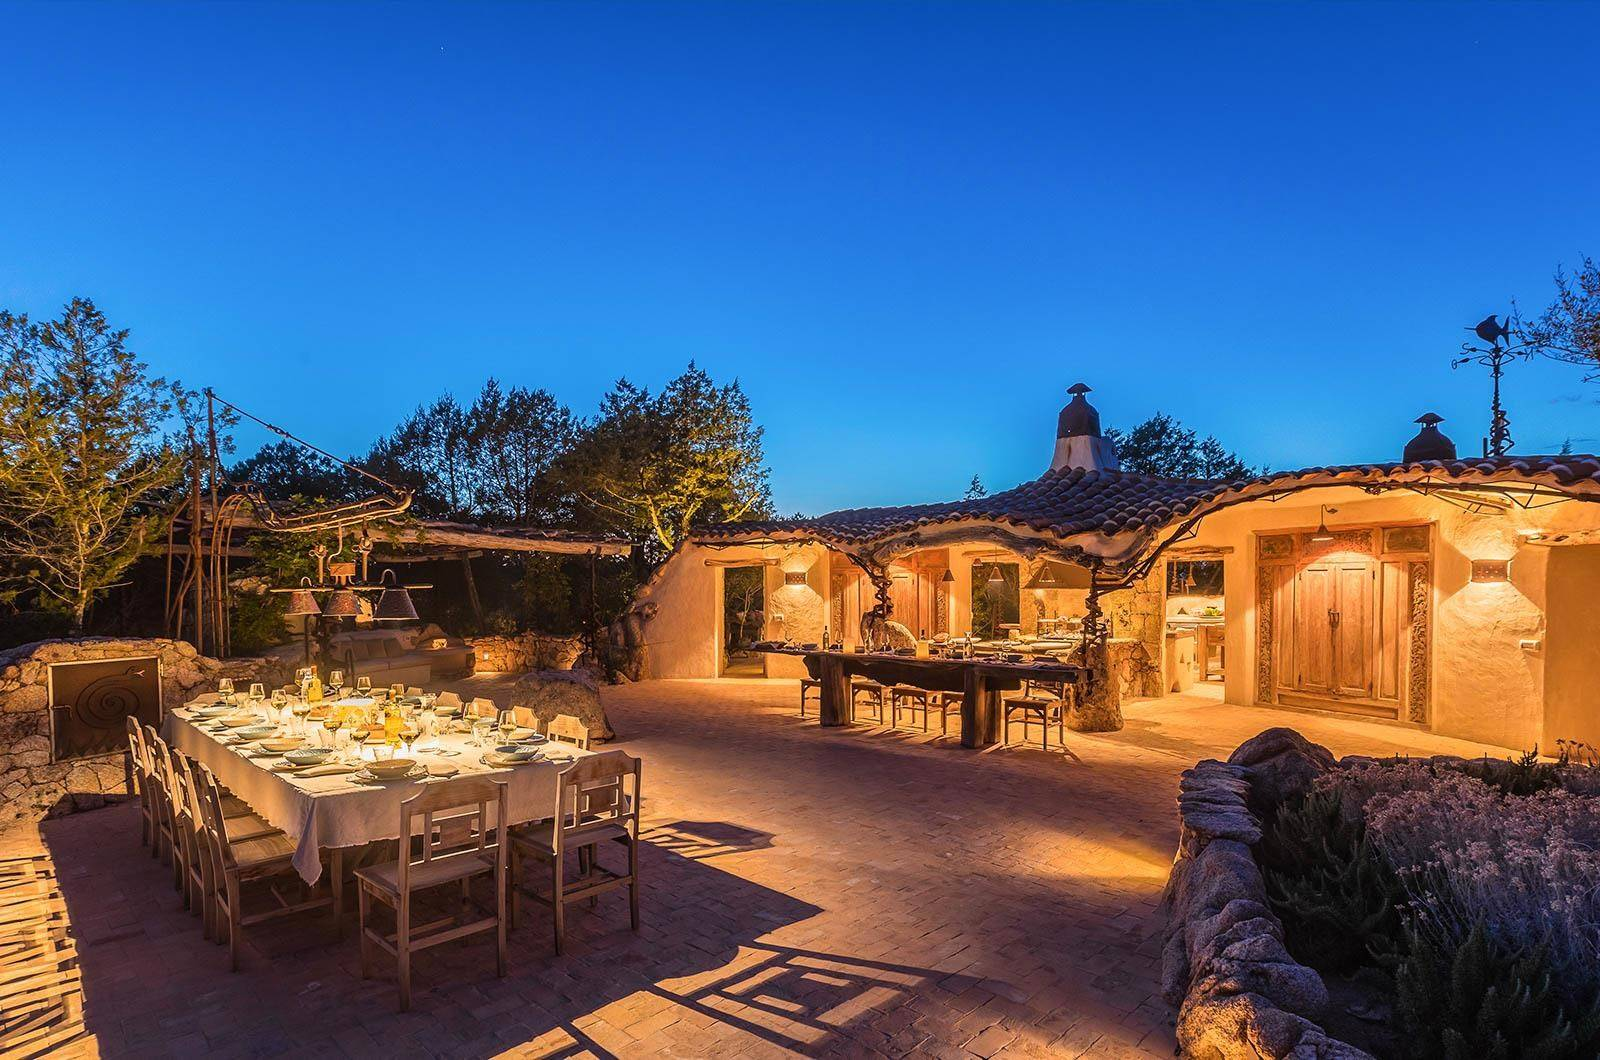 La Garibaldina's covered and open-air dining areas are complemented by a fully equipped outdoor kitchen with barbecue and traditional pizza oven.